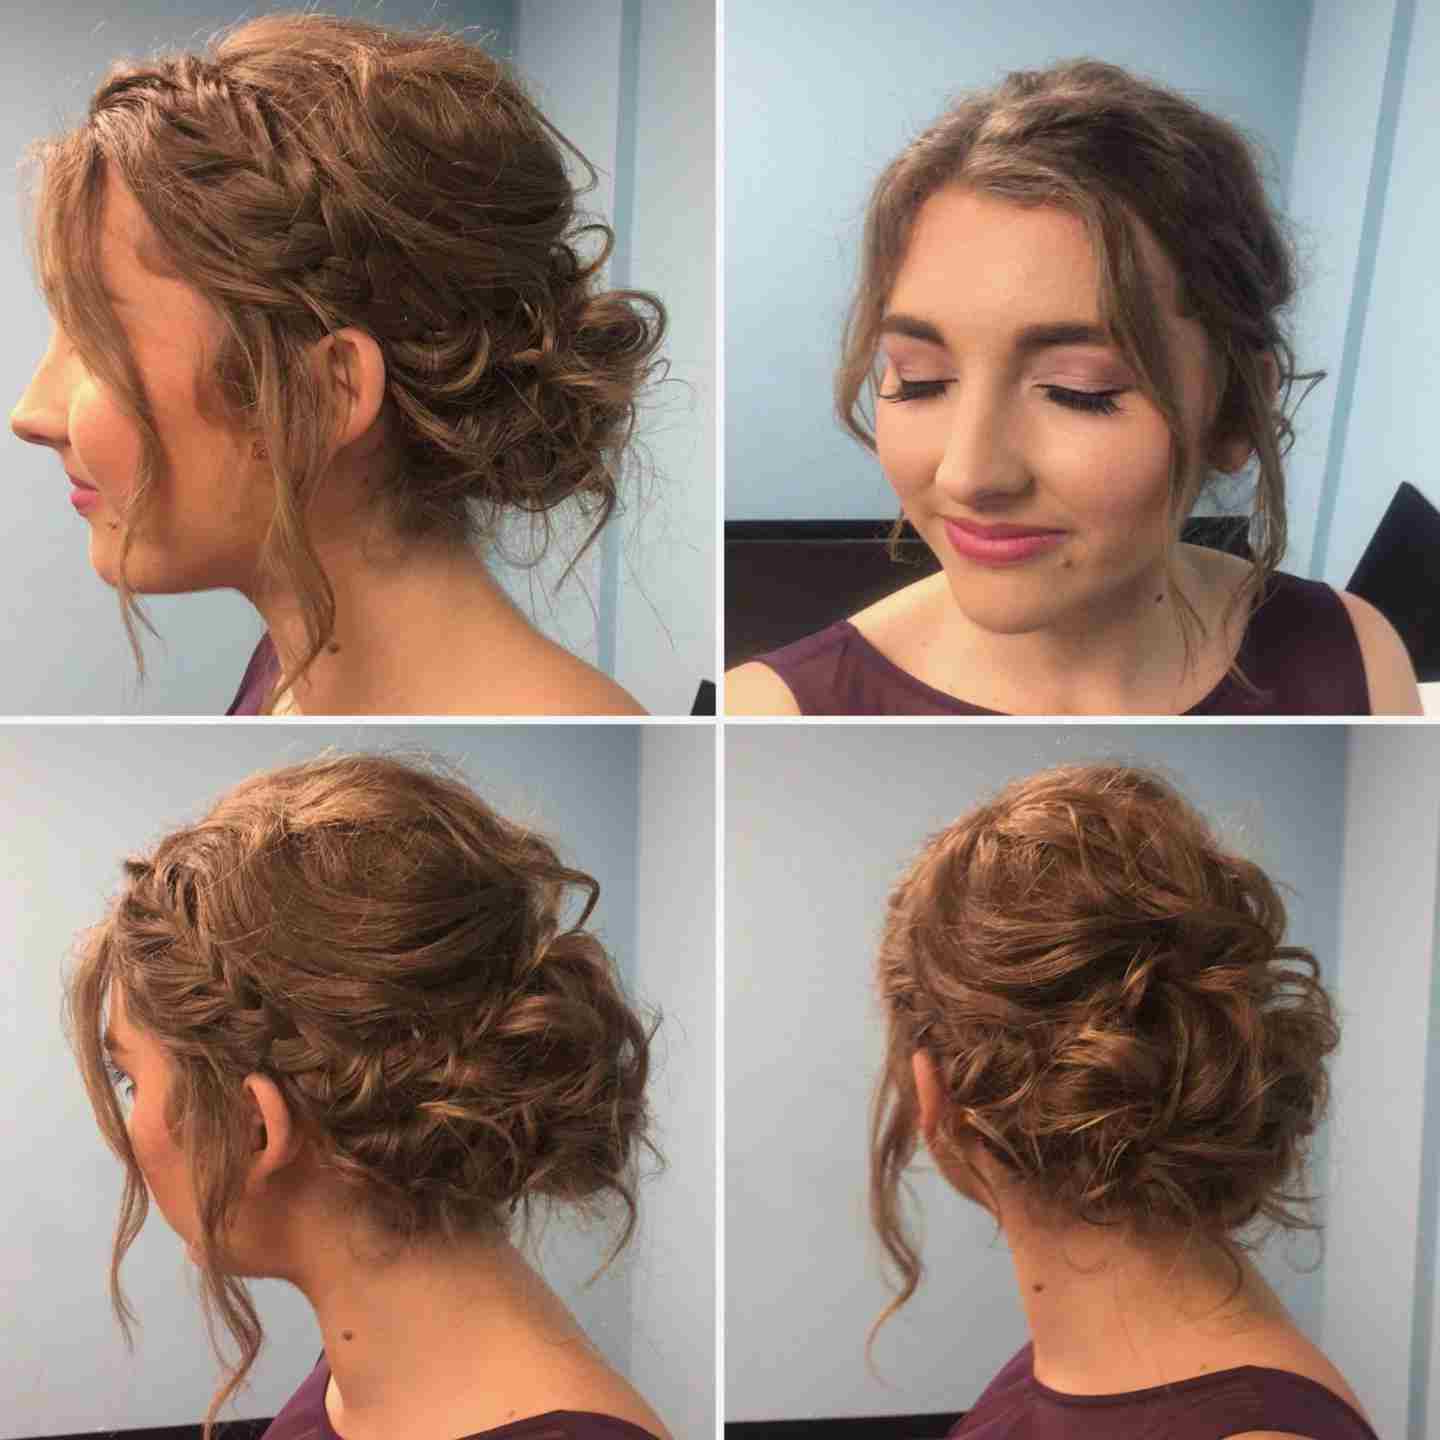 Wedding Hairstyles For Bridesmaids With Short Hair | Bright Wedding Regarding Short Hairstyles For Weddings For Bridesmaids (View 23 of 25)